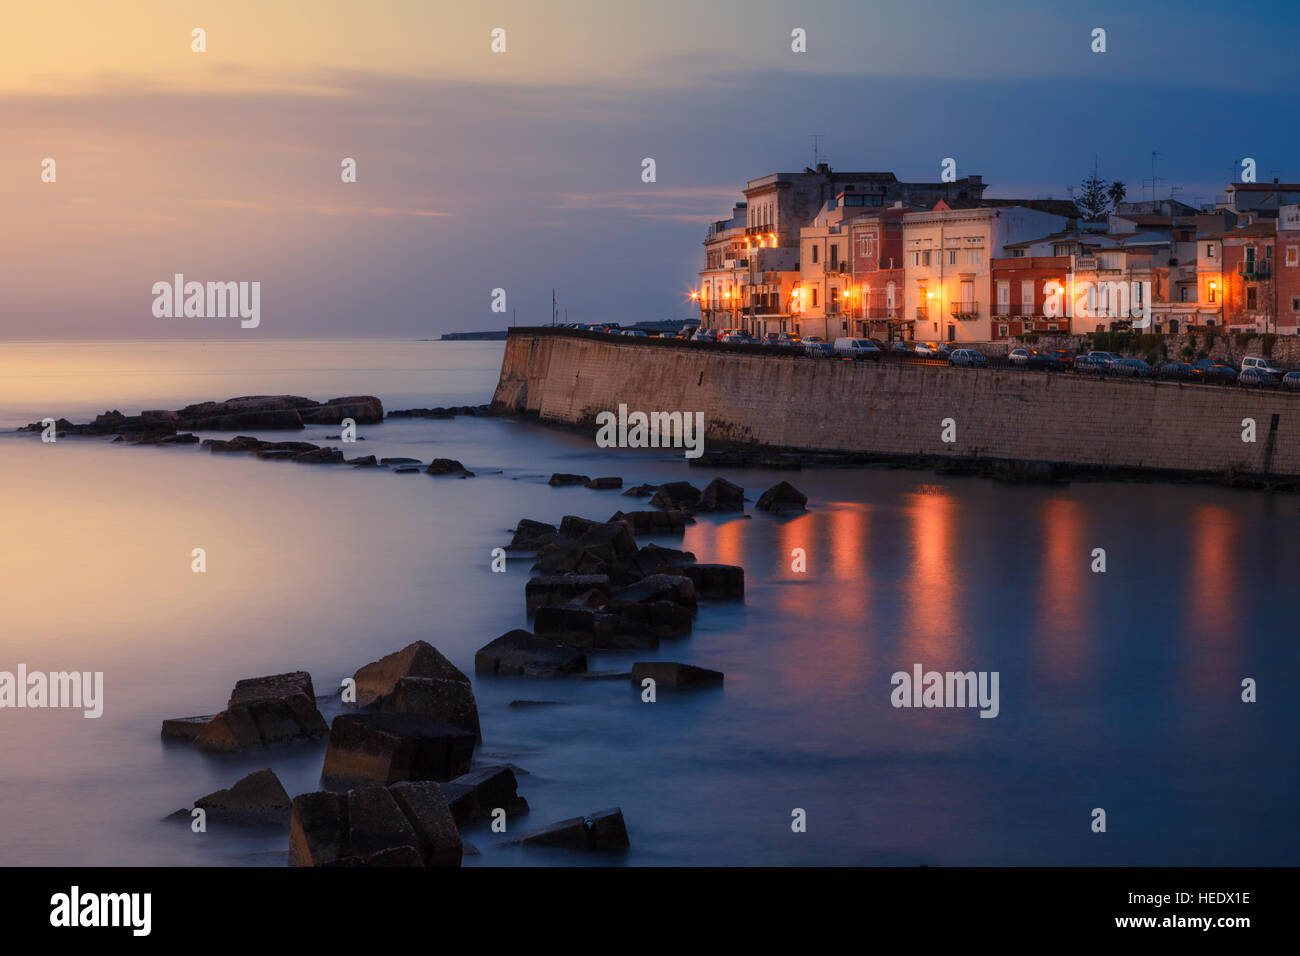 Seafront of Ortygia at dawn, Syracuse, Italy. - Stock Image